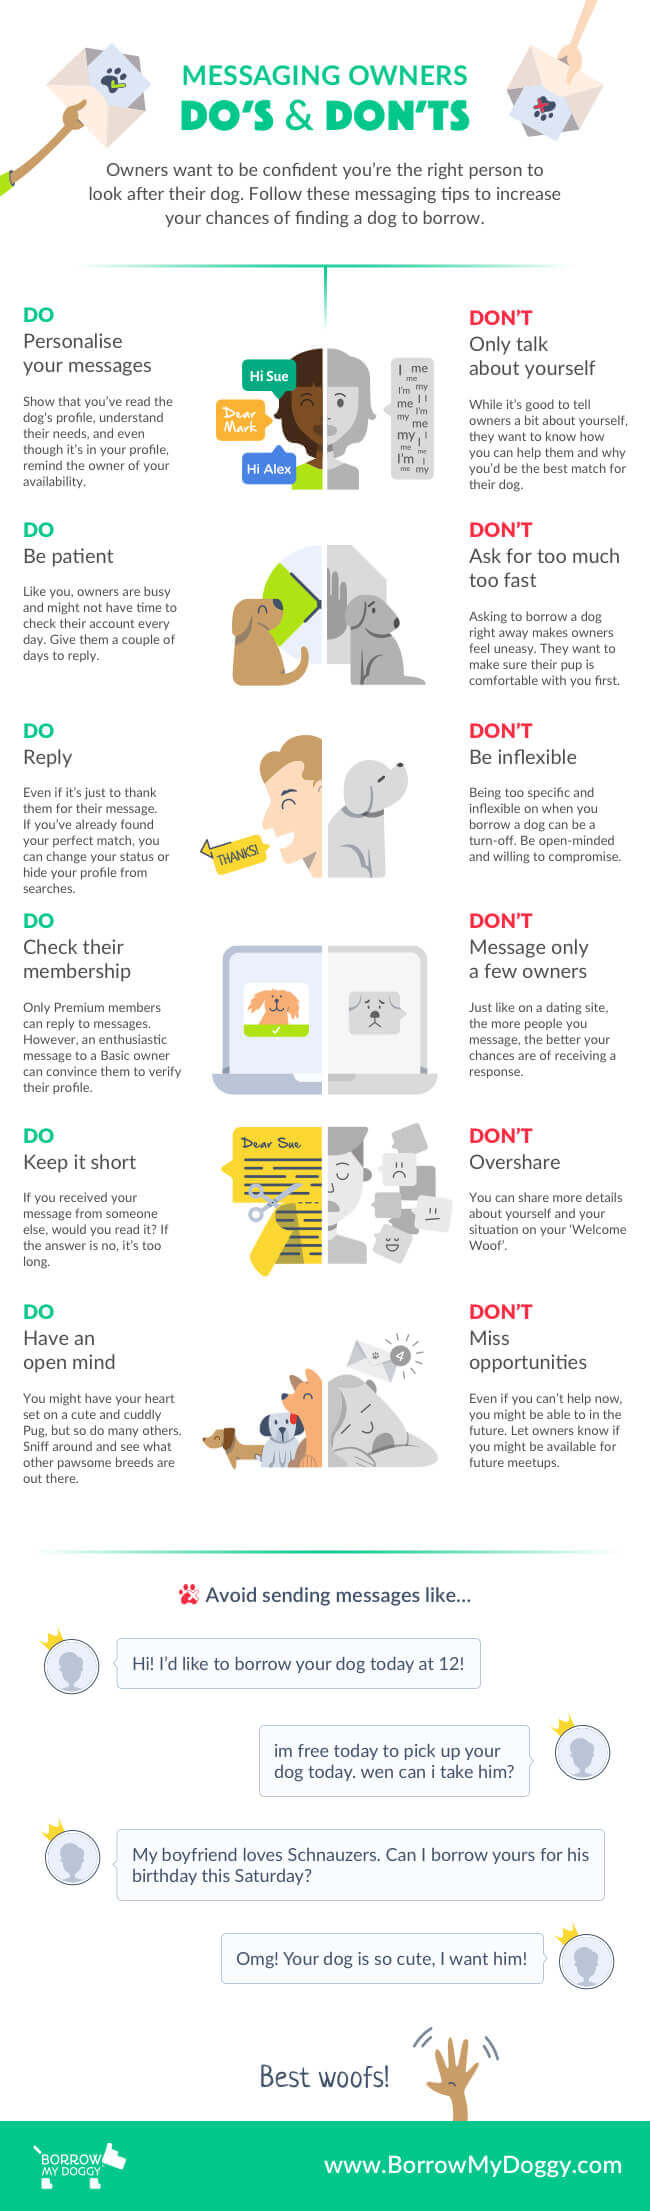 Messaging Owners Do's and Don'ts